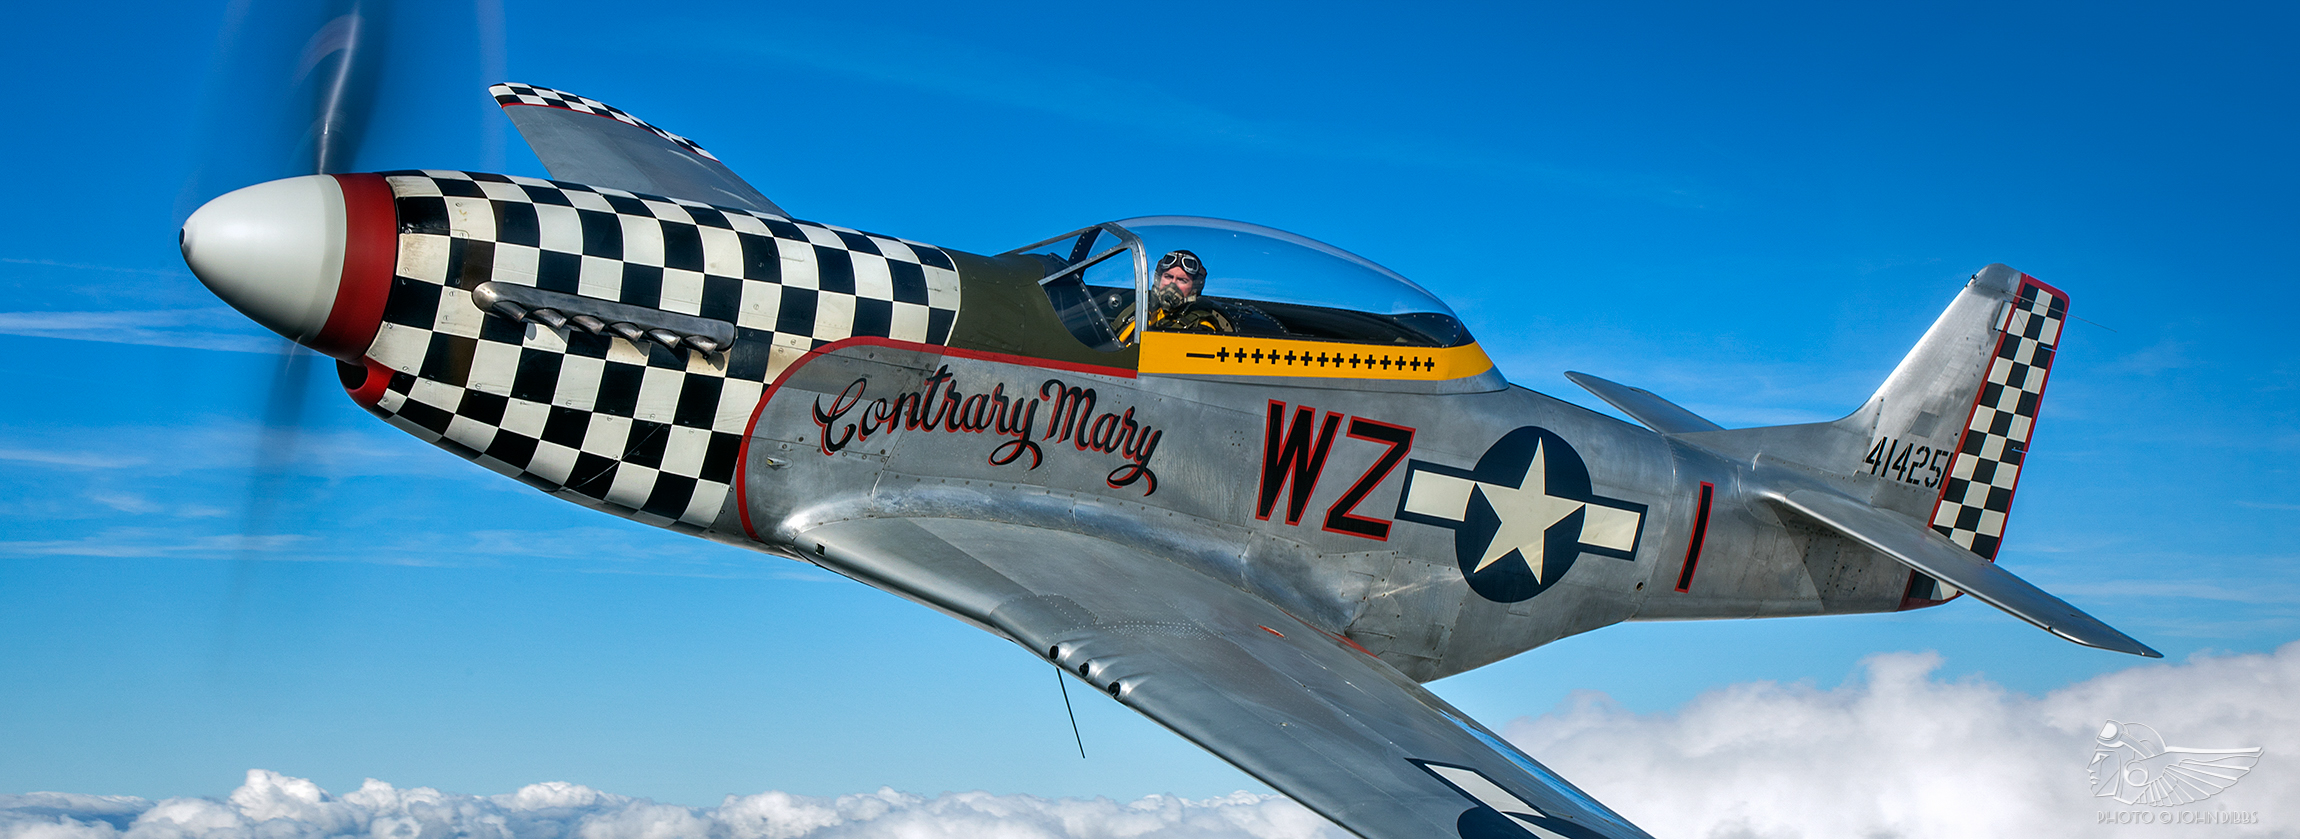 North American TF-51D Mustang Contrary Mary